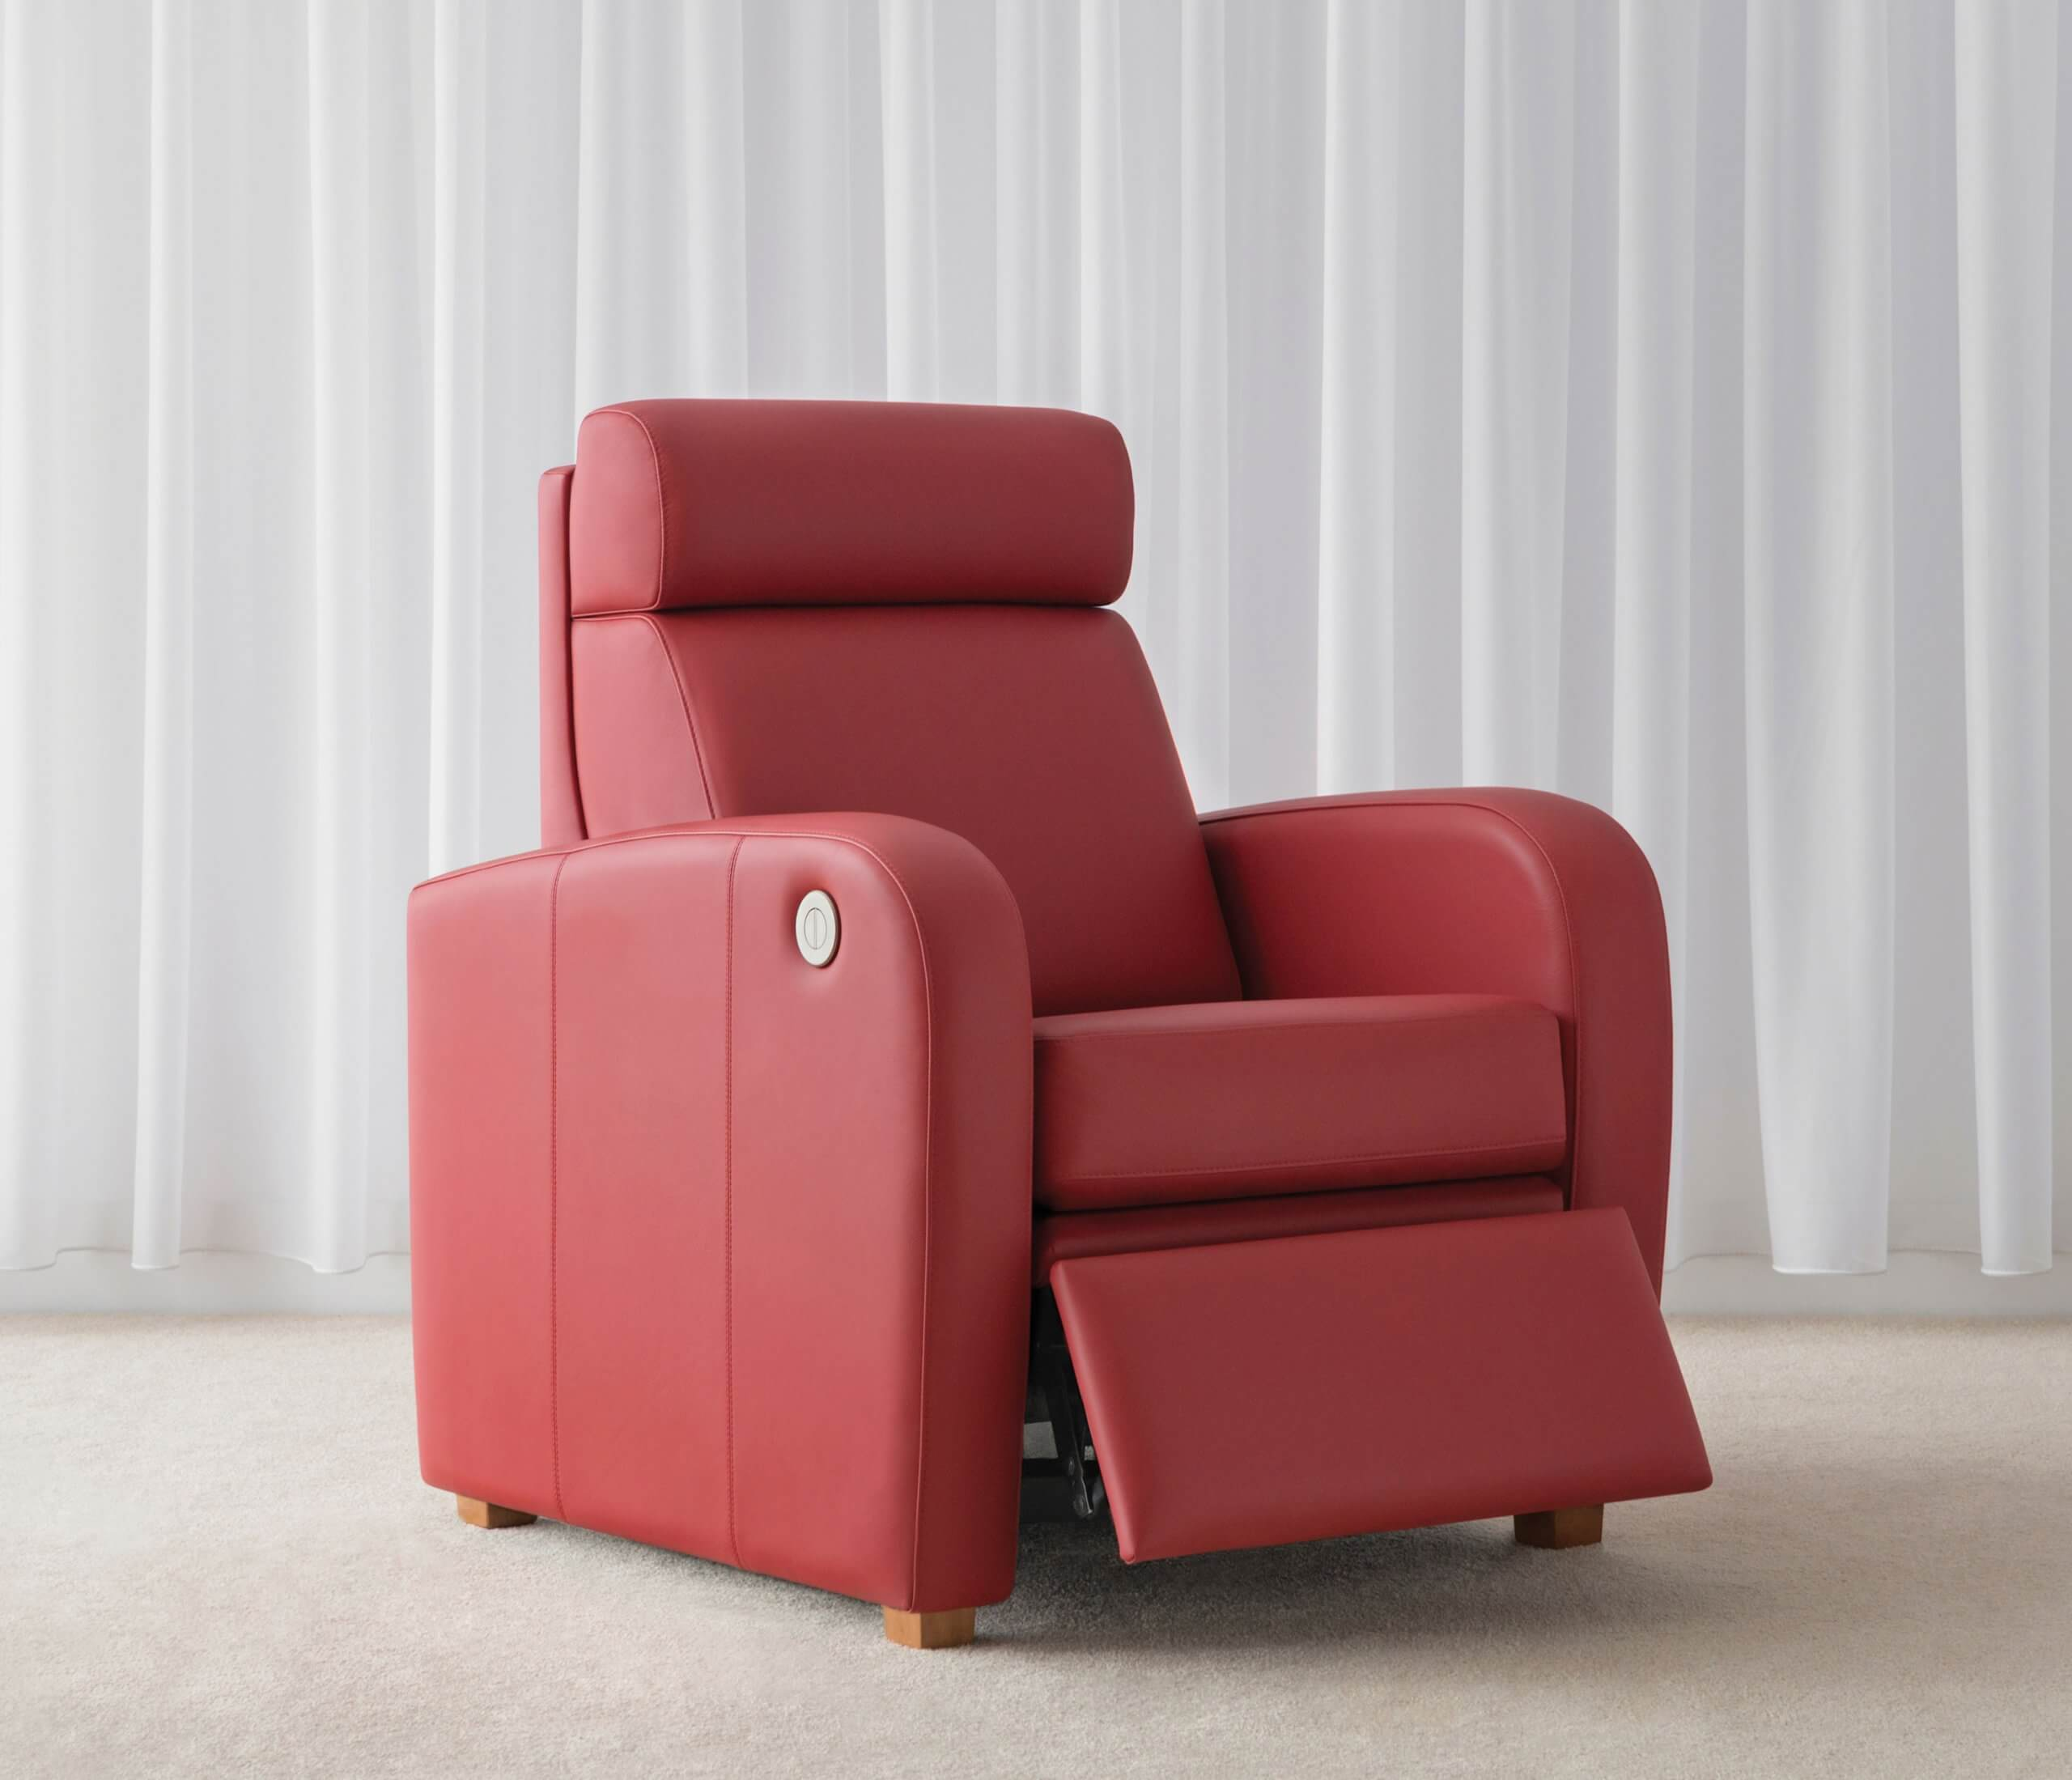 red leather arm chair with electric cordless recliner